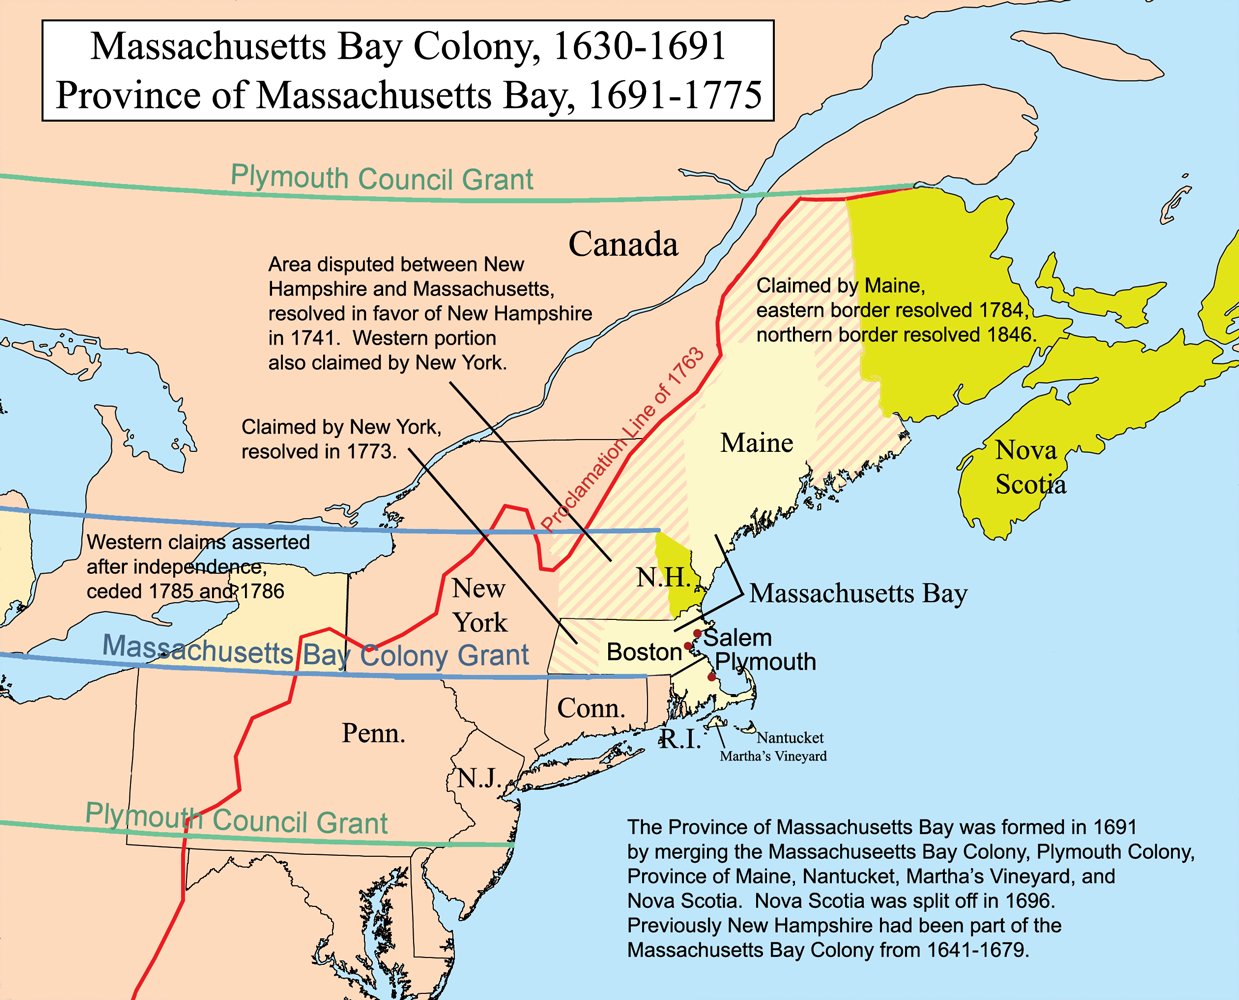 an introduction to the history of the massachusetts bay company The massachusetts bay company agreed, and in 1630 john winthrop, the newly-elected governor, brought another 1,000 settlers to massachusetts thomas dudley was made deputy governor winthrop initially landed at salem, but he subsequently moved to the south and established boston, which became the capital of massachusetts.